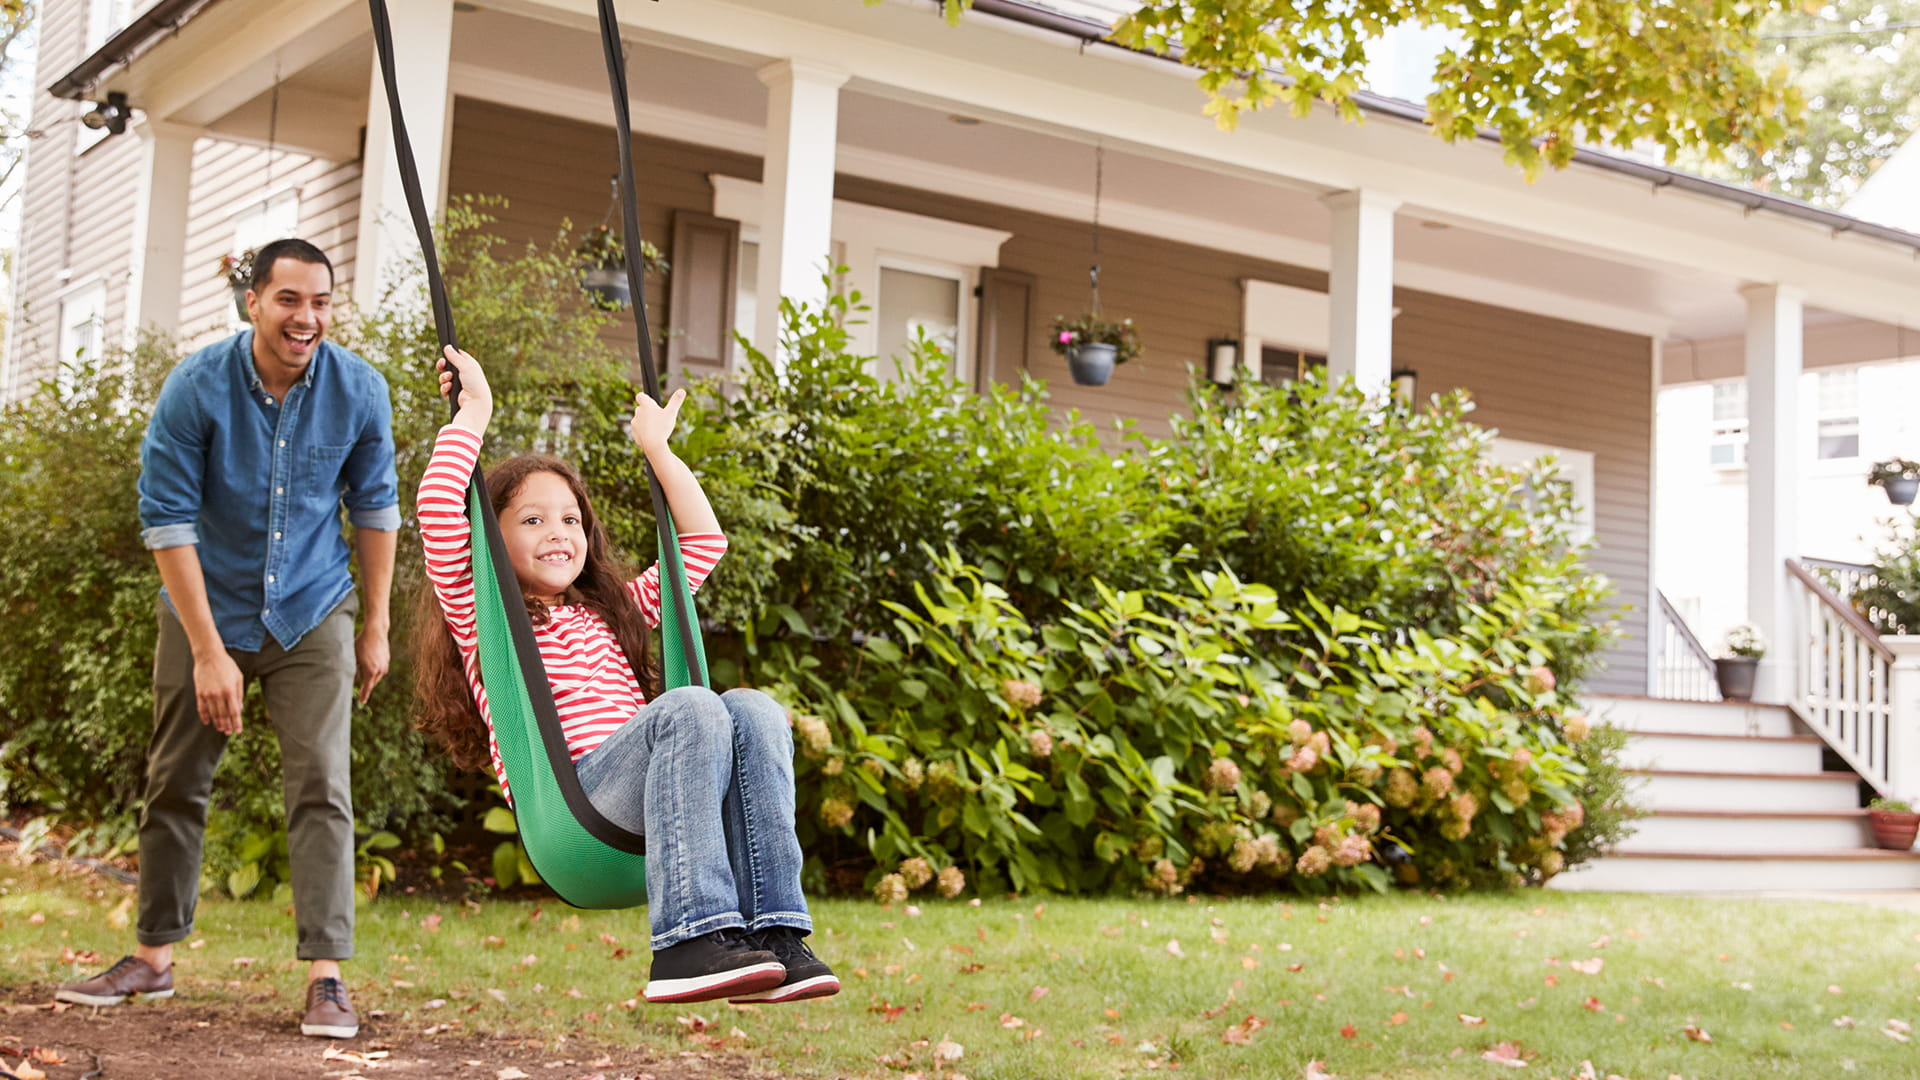 Father pushing daughter on swing in yard.